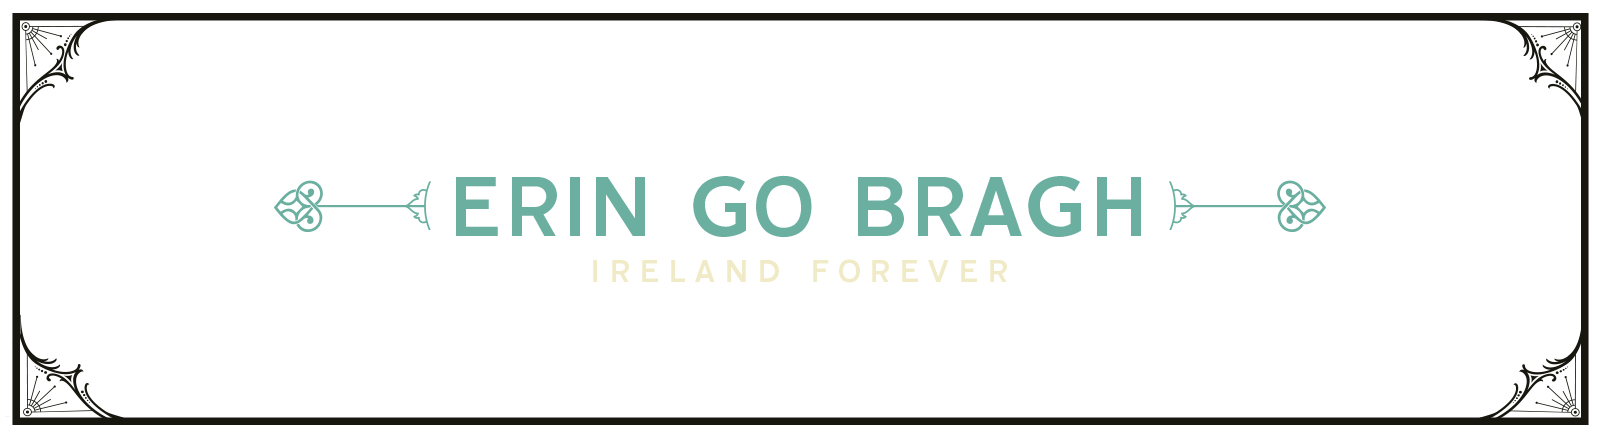 rs-sons-of-erin-erin-go-bragh